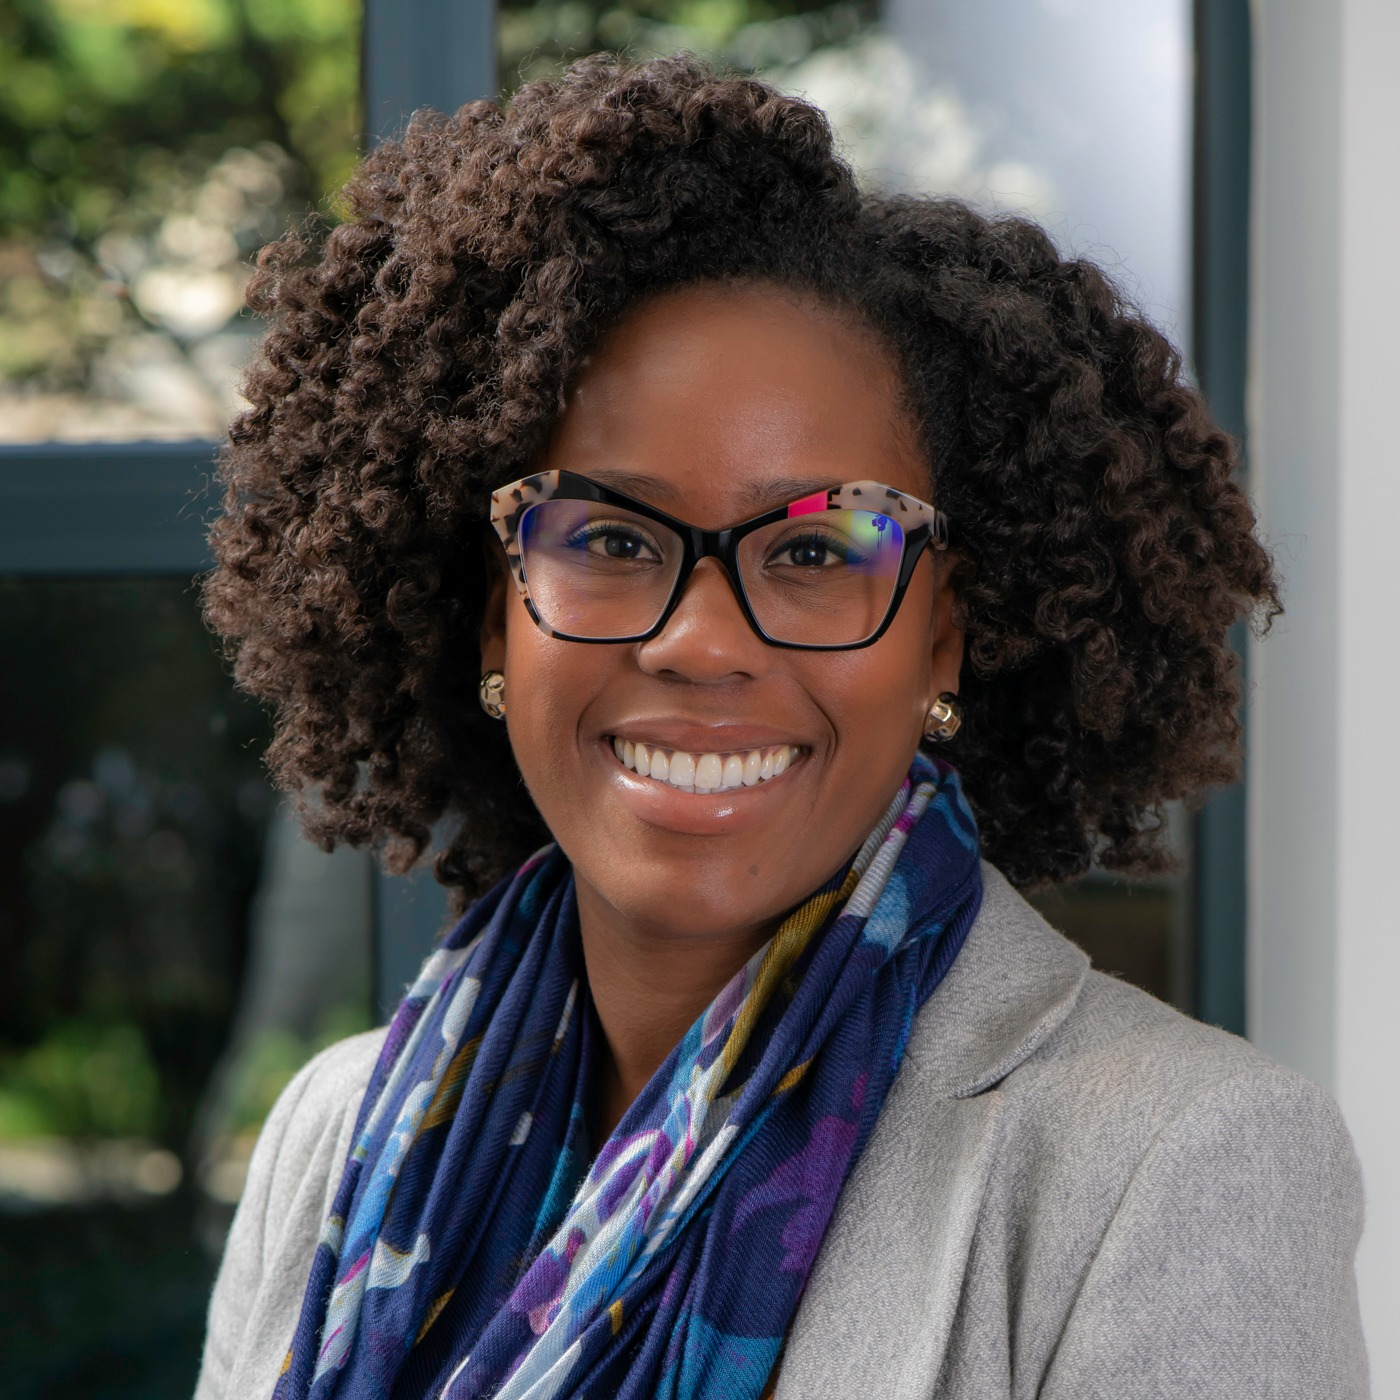 Adia Gooden, a Black woman with curly dark hair, glasses, and scarf